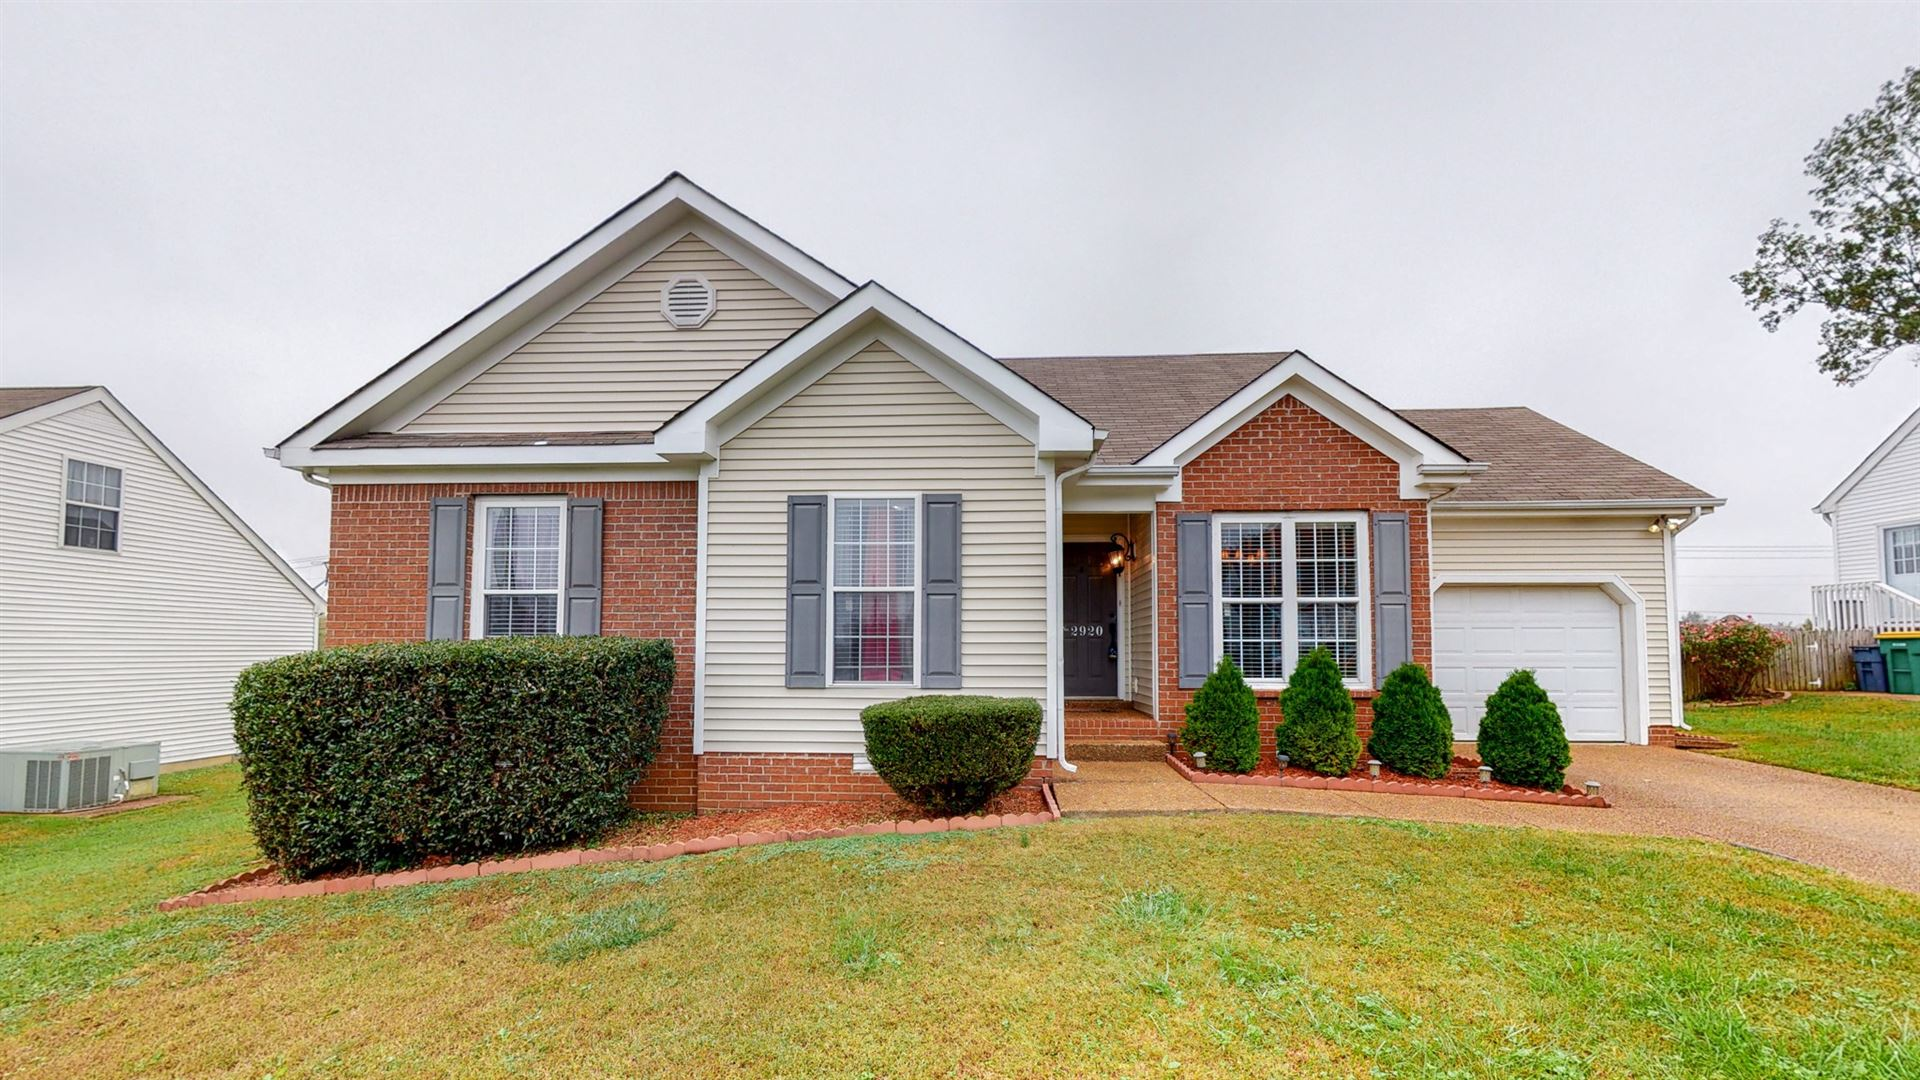 2920 Torrence Trl, Spring Hill, TN 37174 - MLS#: 2202798